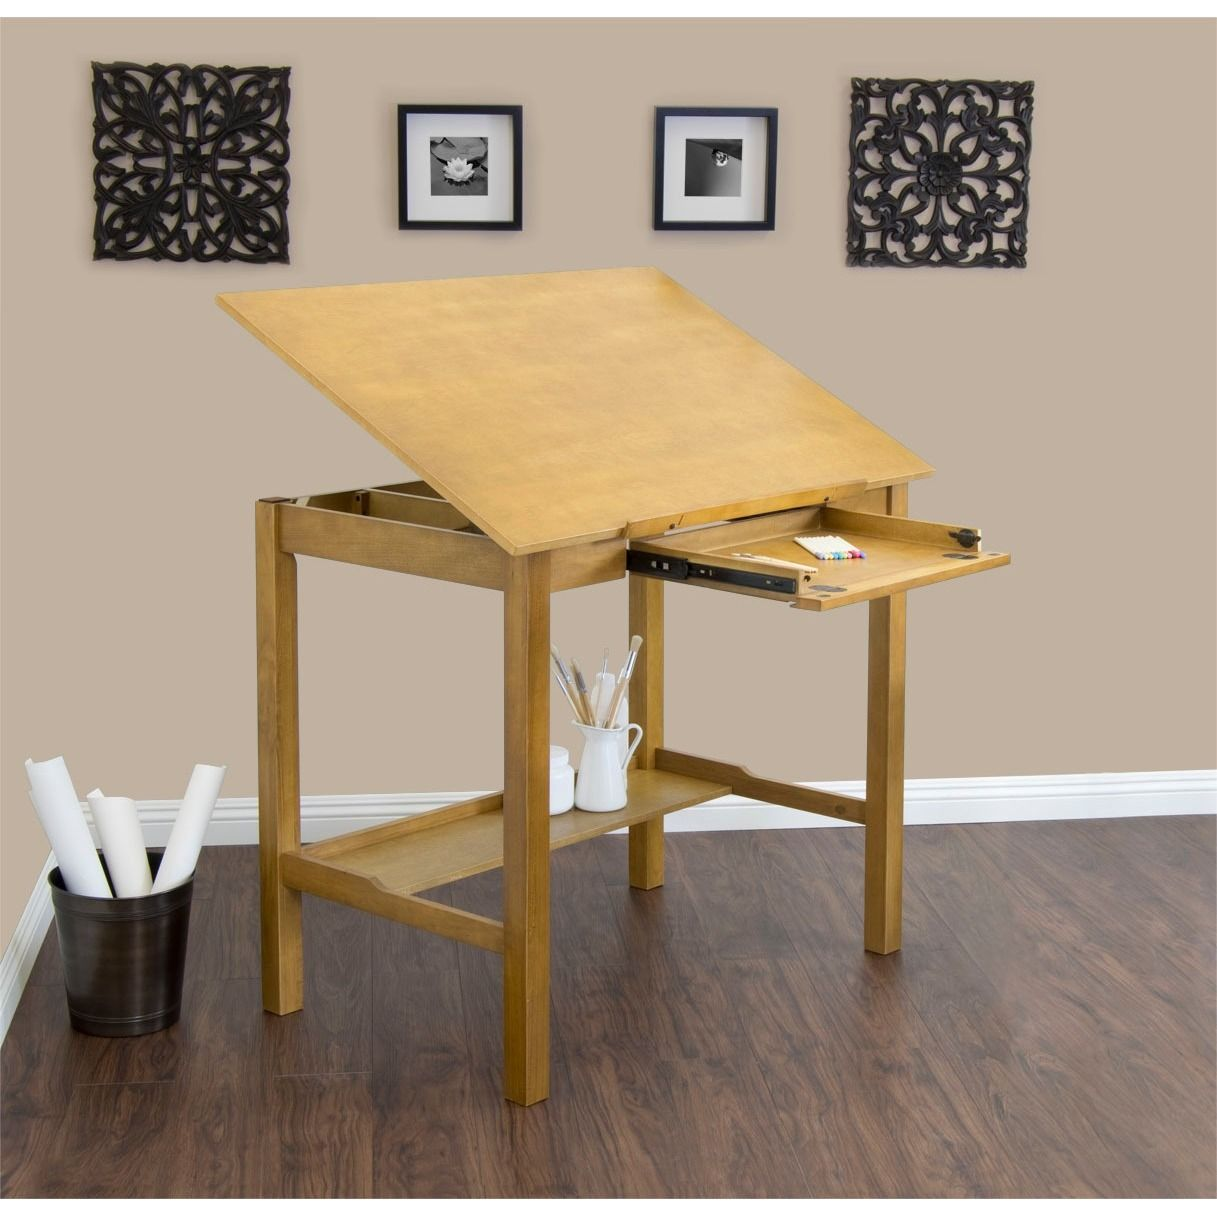 The handsome minimalist design of the america ii drafting table the handsome minimalist design of the america ii drafting table complements any home or work malvernweather Images